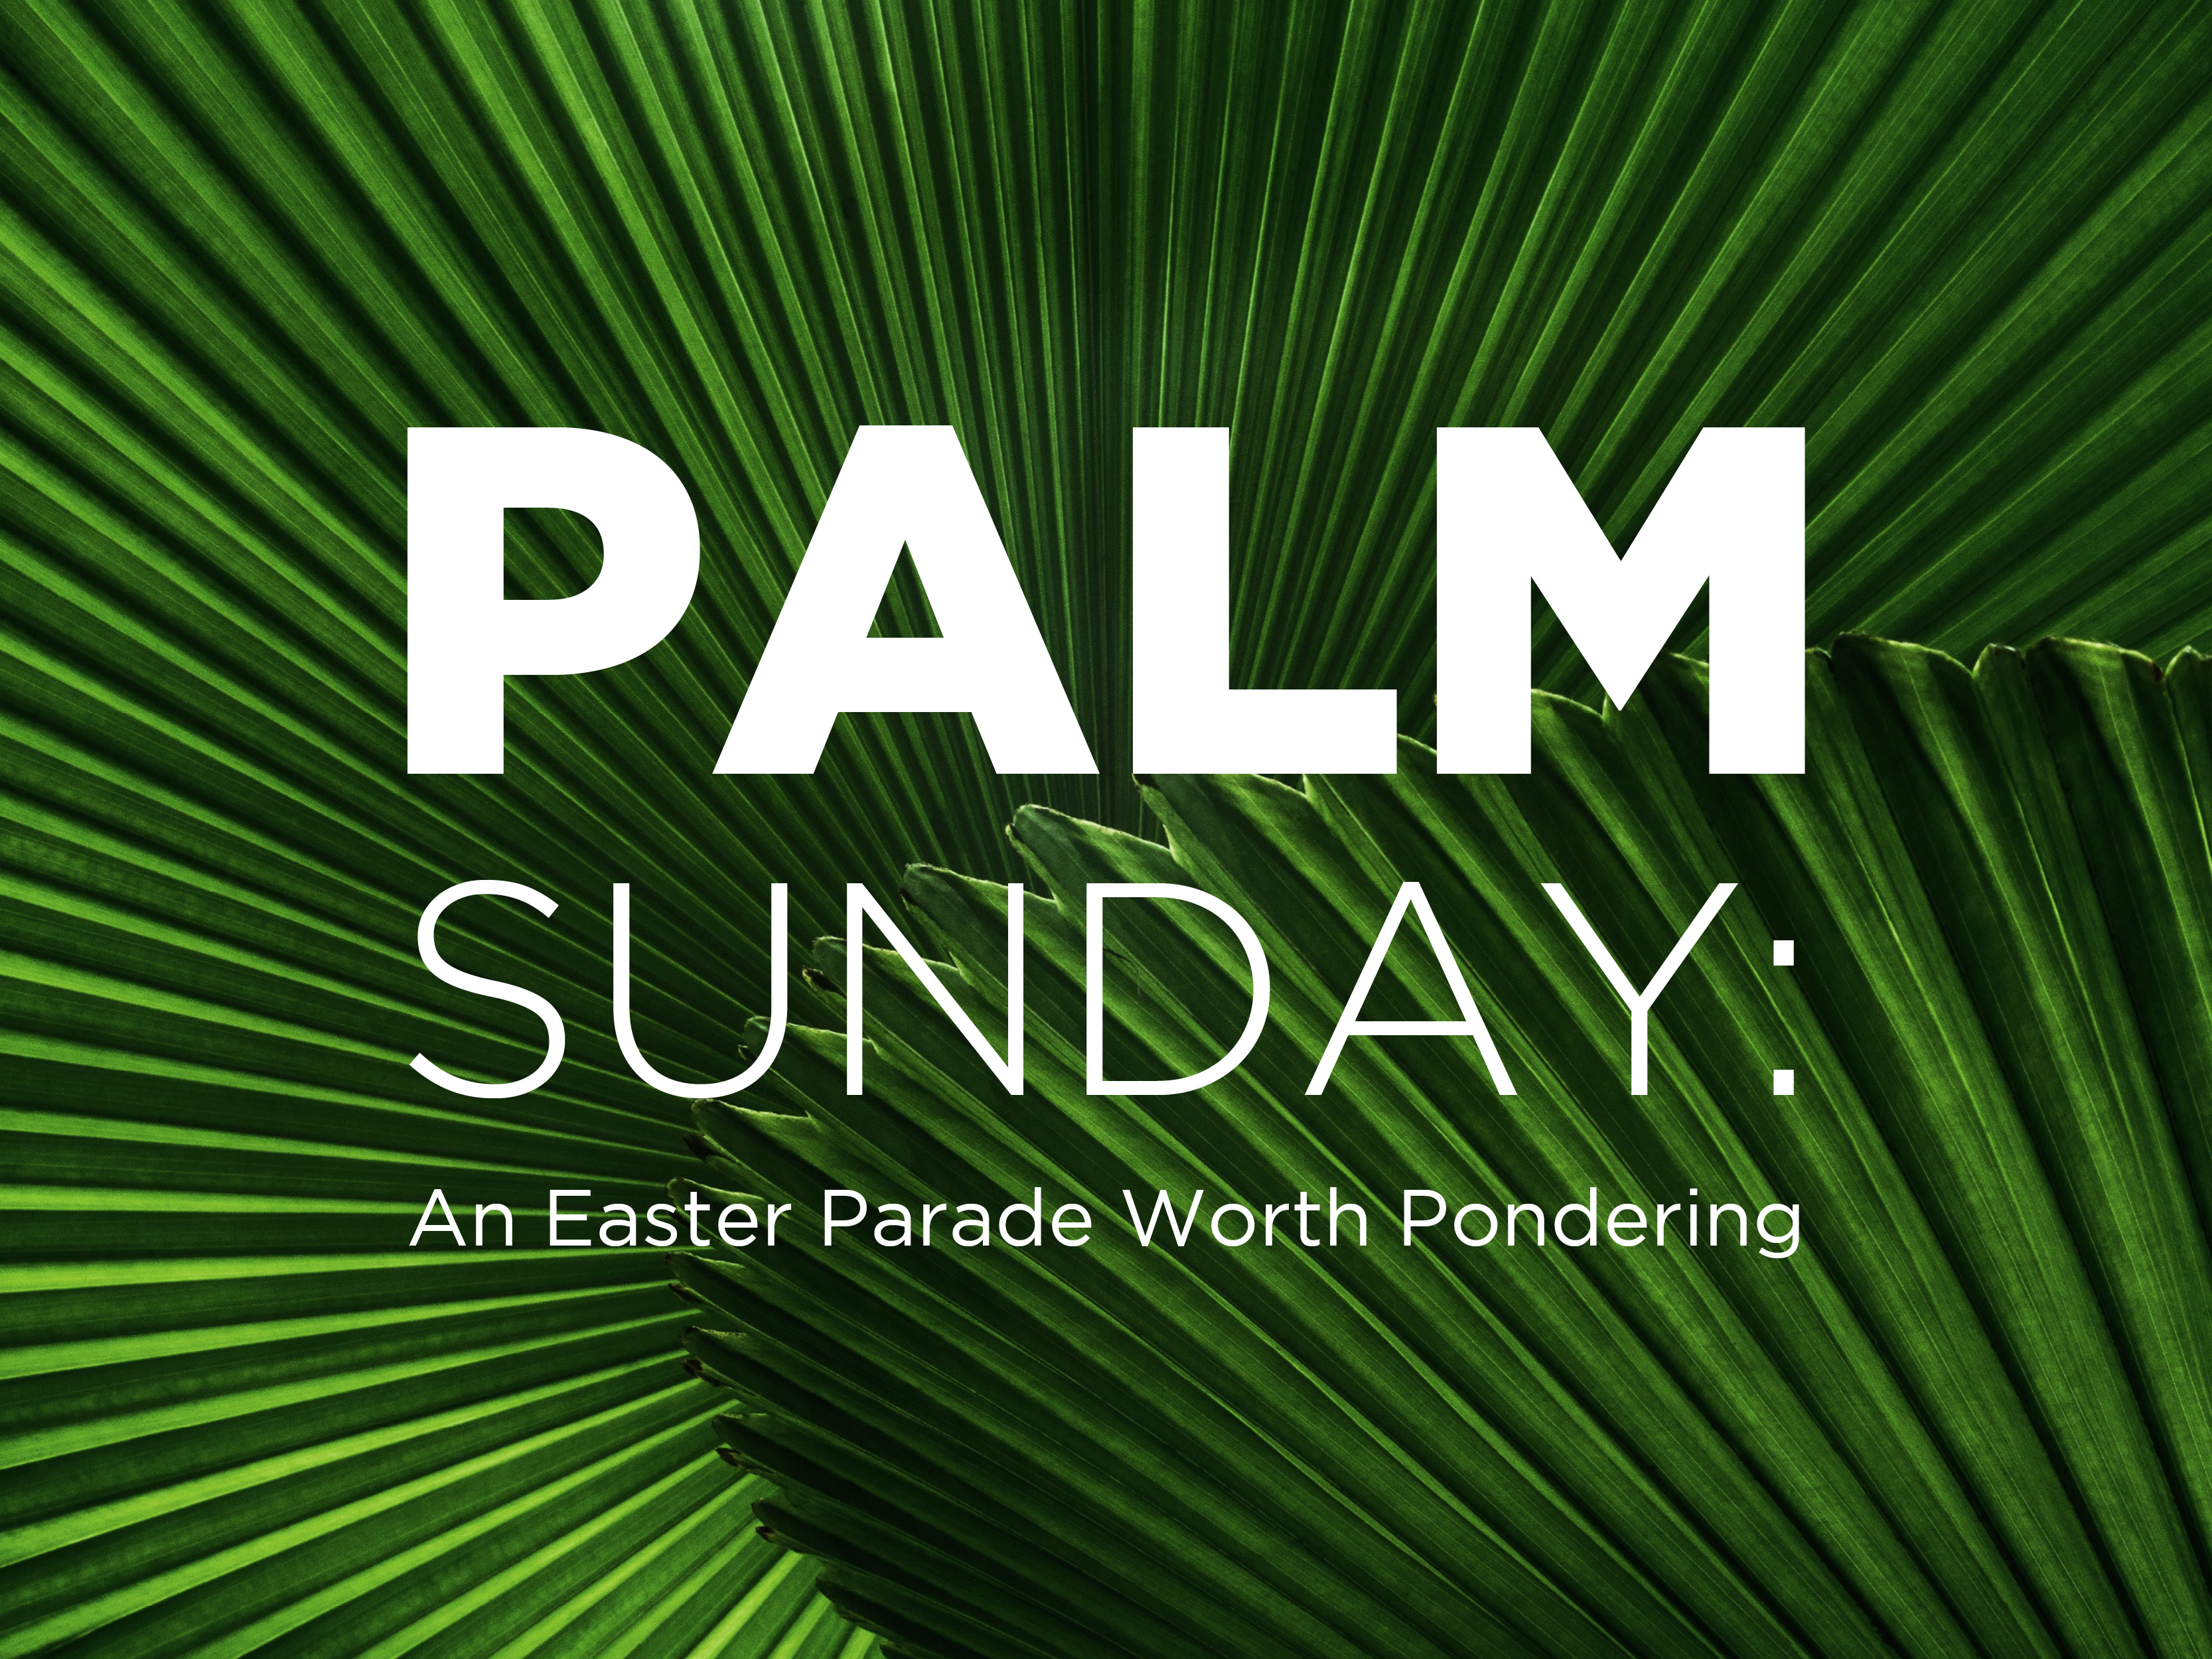 Palm Sunday Video Submissions